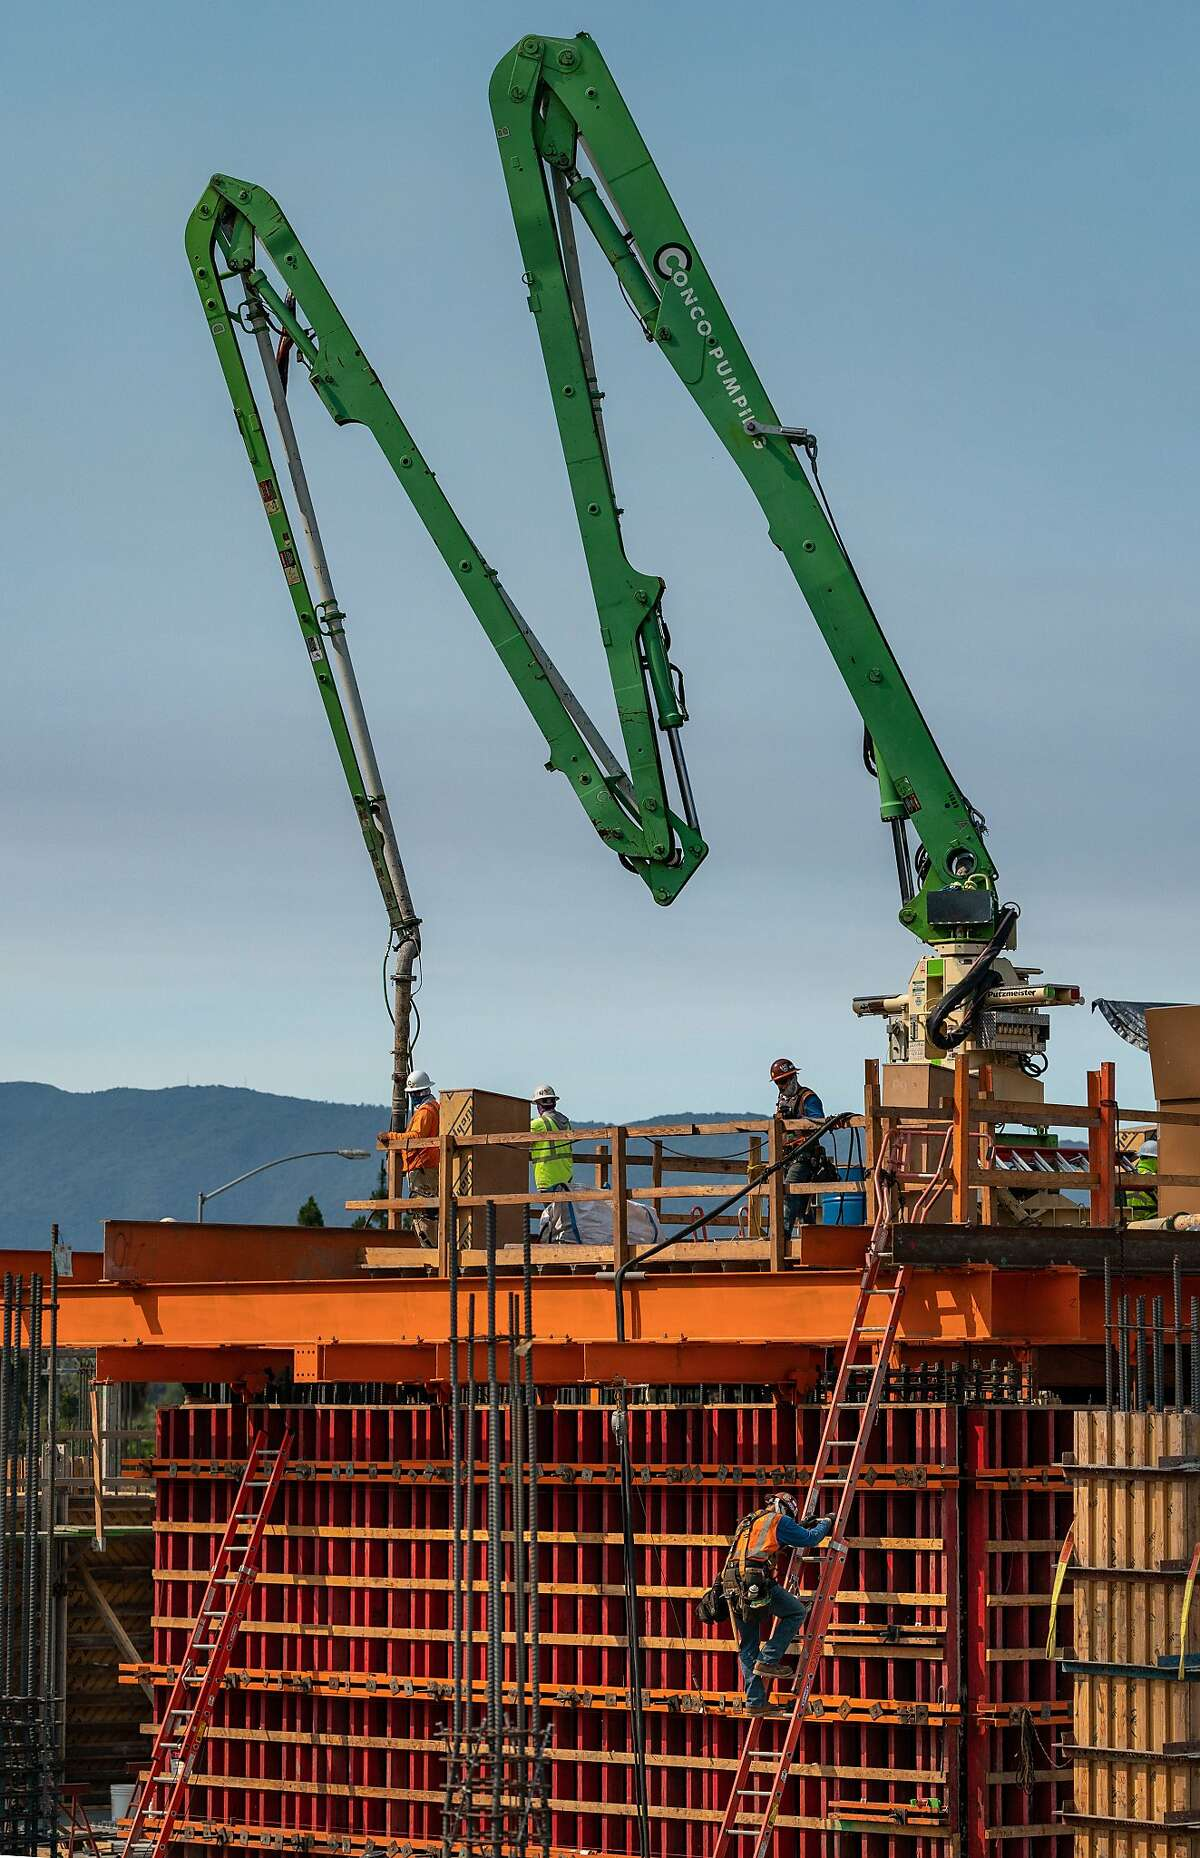 Workers pump wet concrete during the building of the new Adobe tower on Wednesday, July 15, 2020 in San Jose, Calif. The building is part of a big regional plan that predicts heaviest concentration of Bay Area growth in coming decades will be in South Bay, specifically in and around downtown San Jose